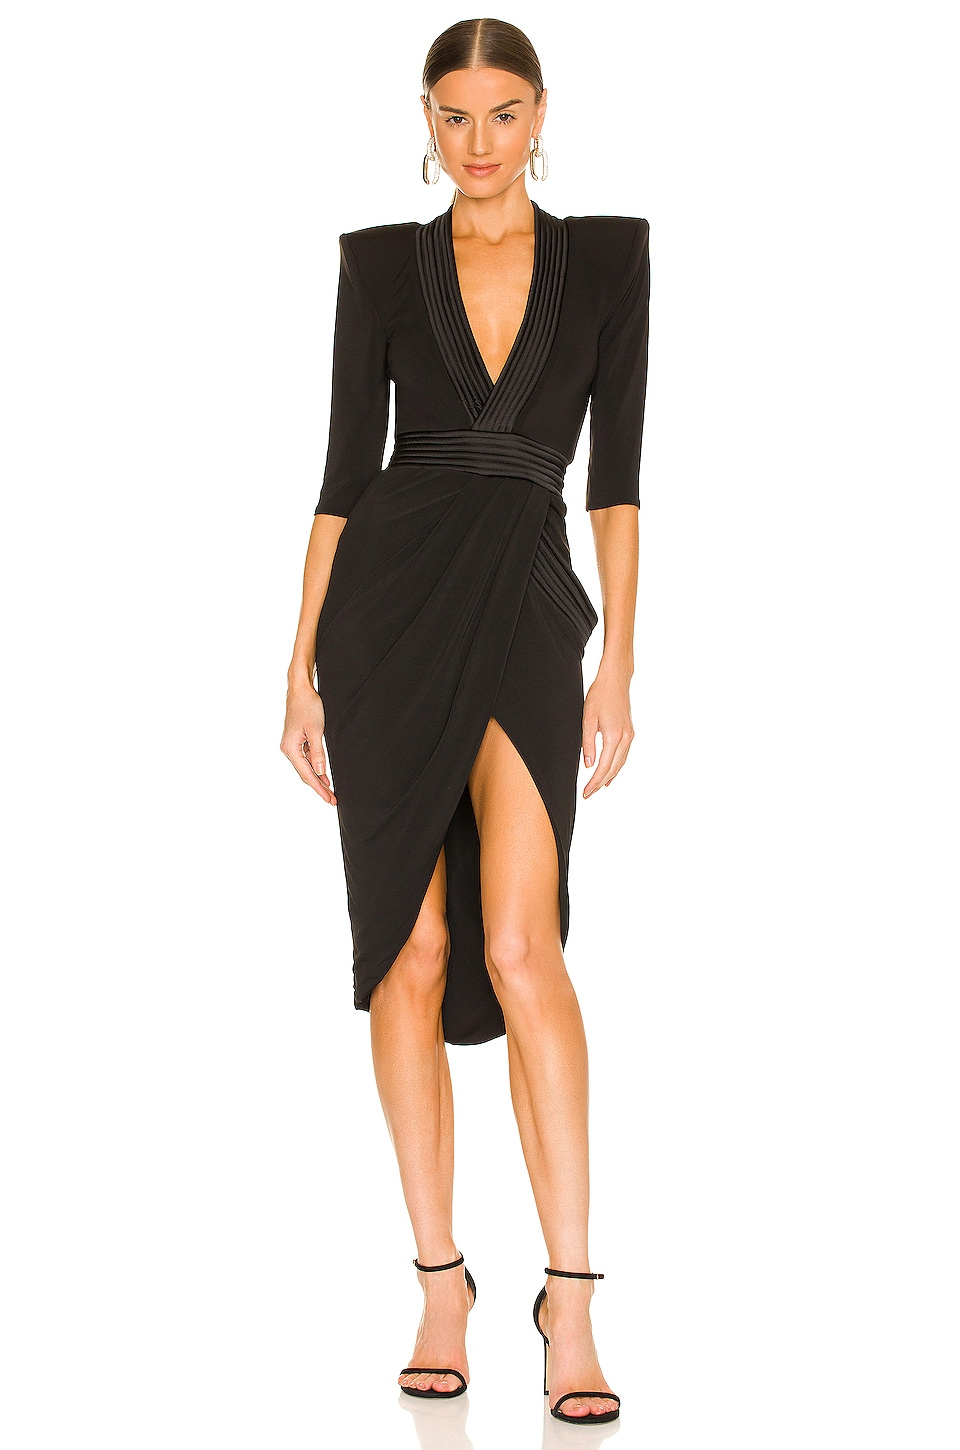 Zhivago Eye of Horus Midi Dress in Black